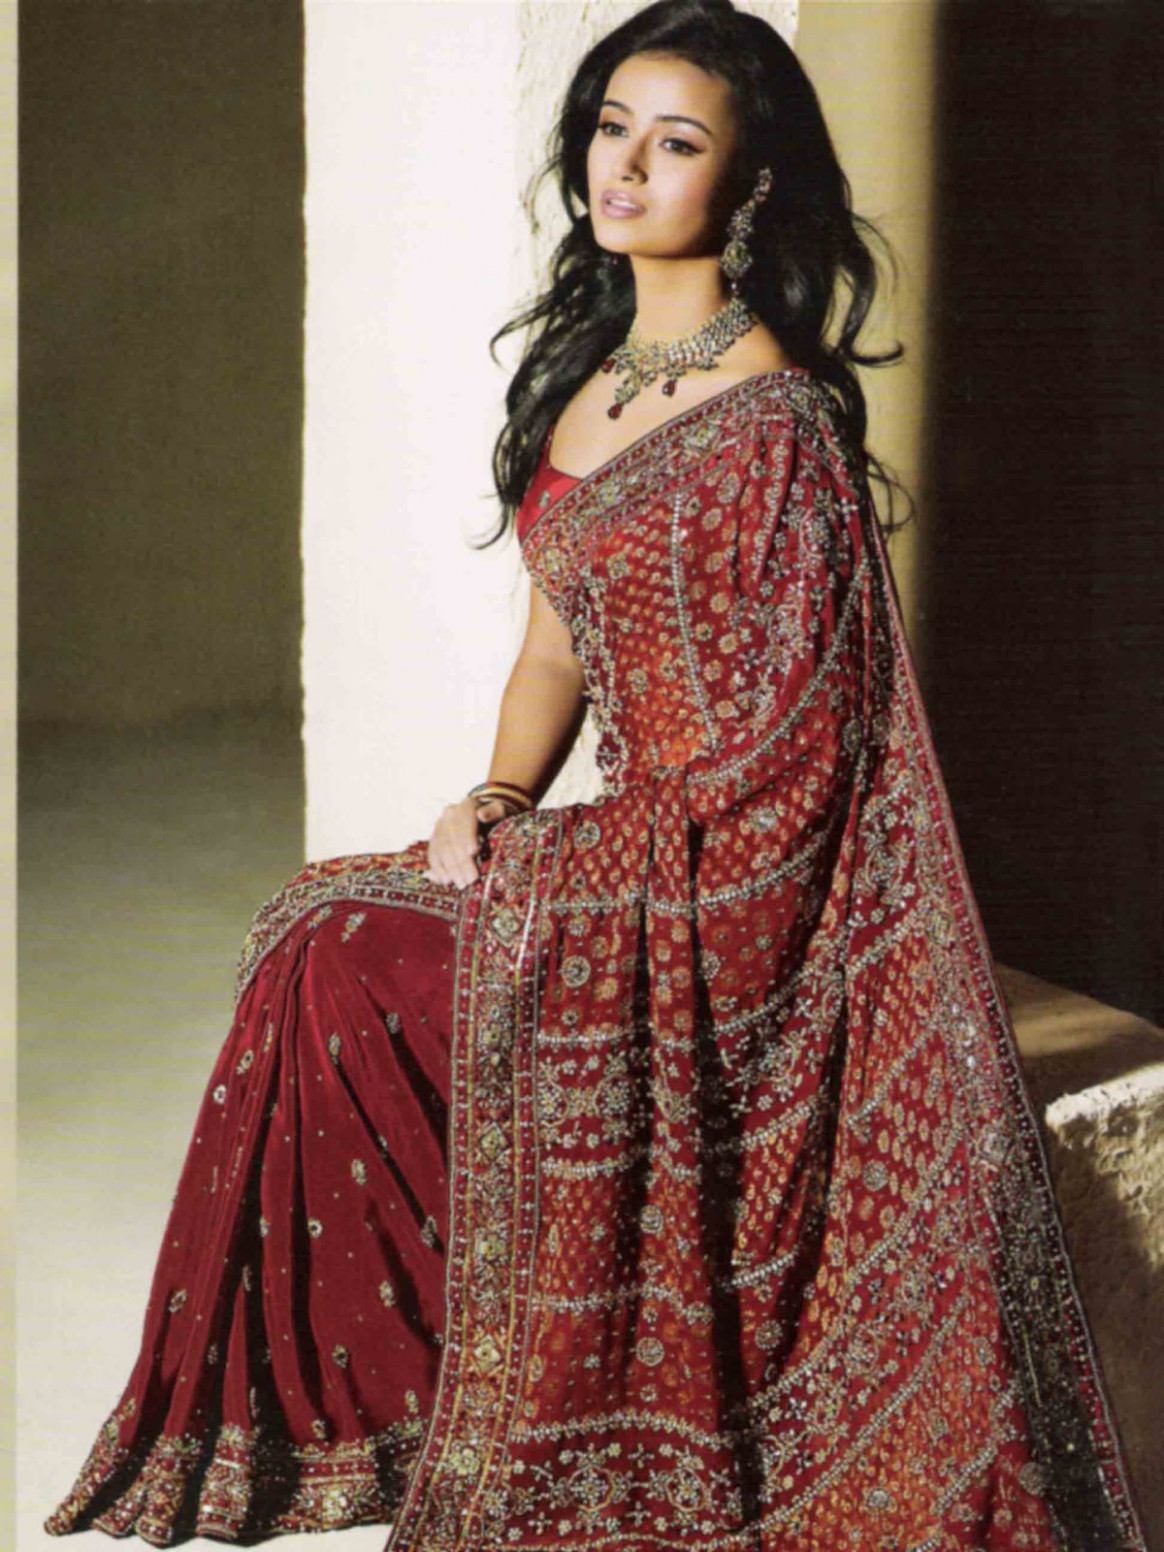 Sport: Saree : Most Popular Fashion in India